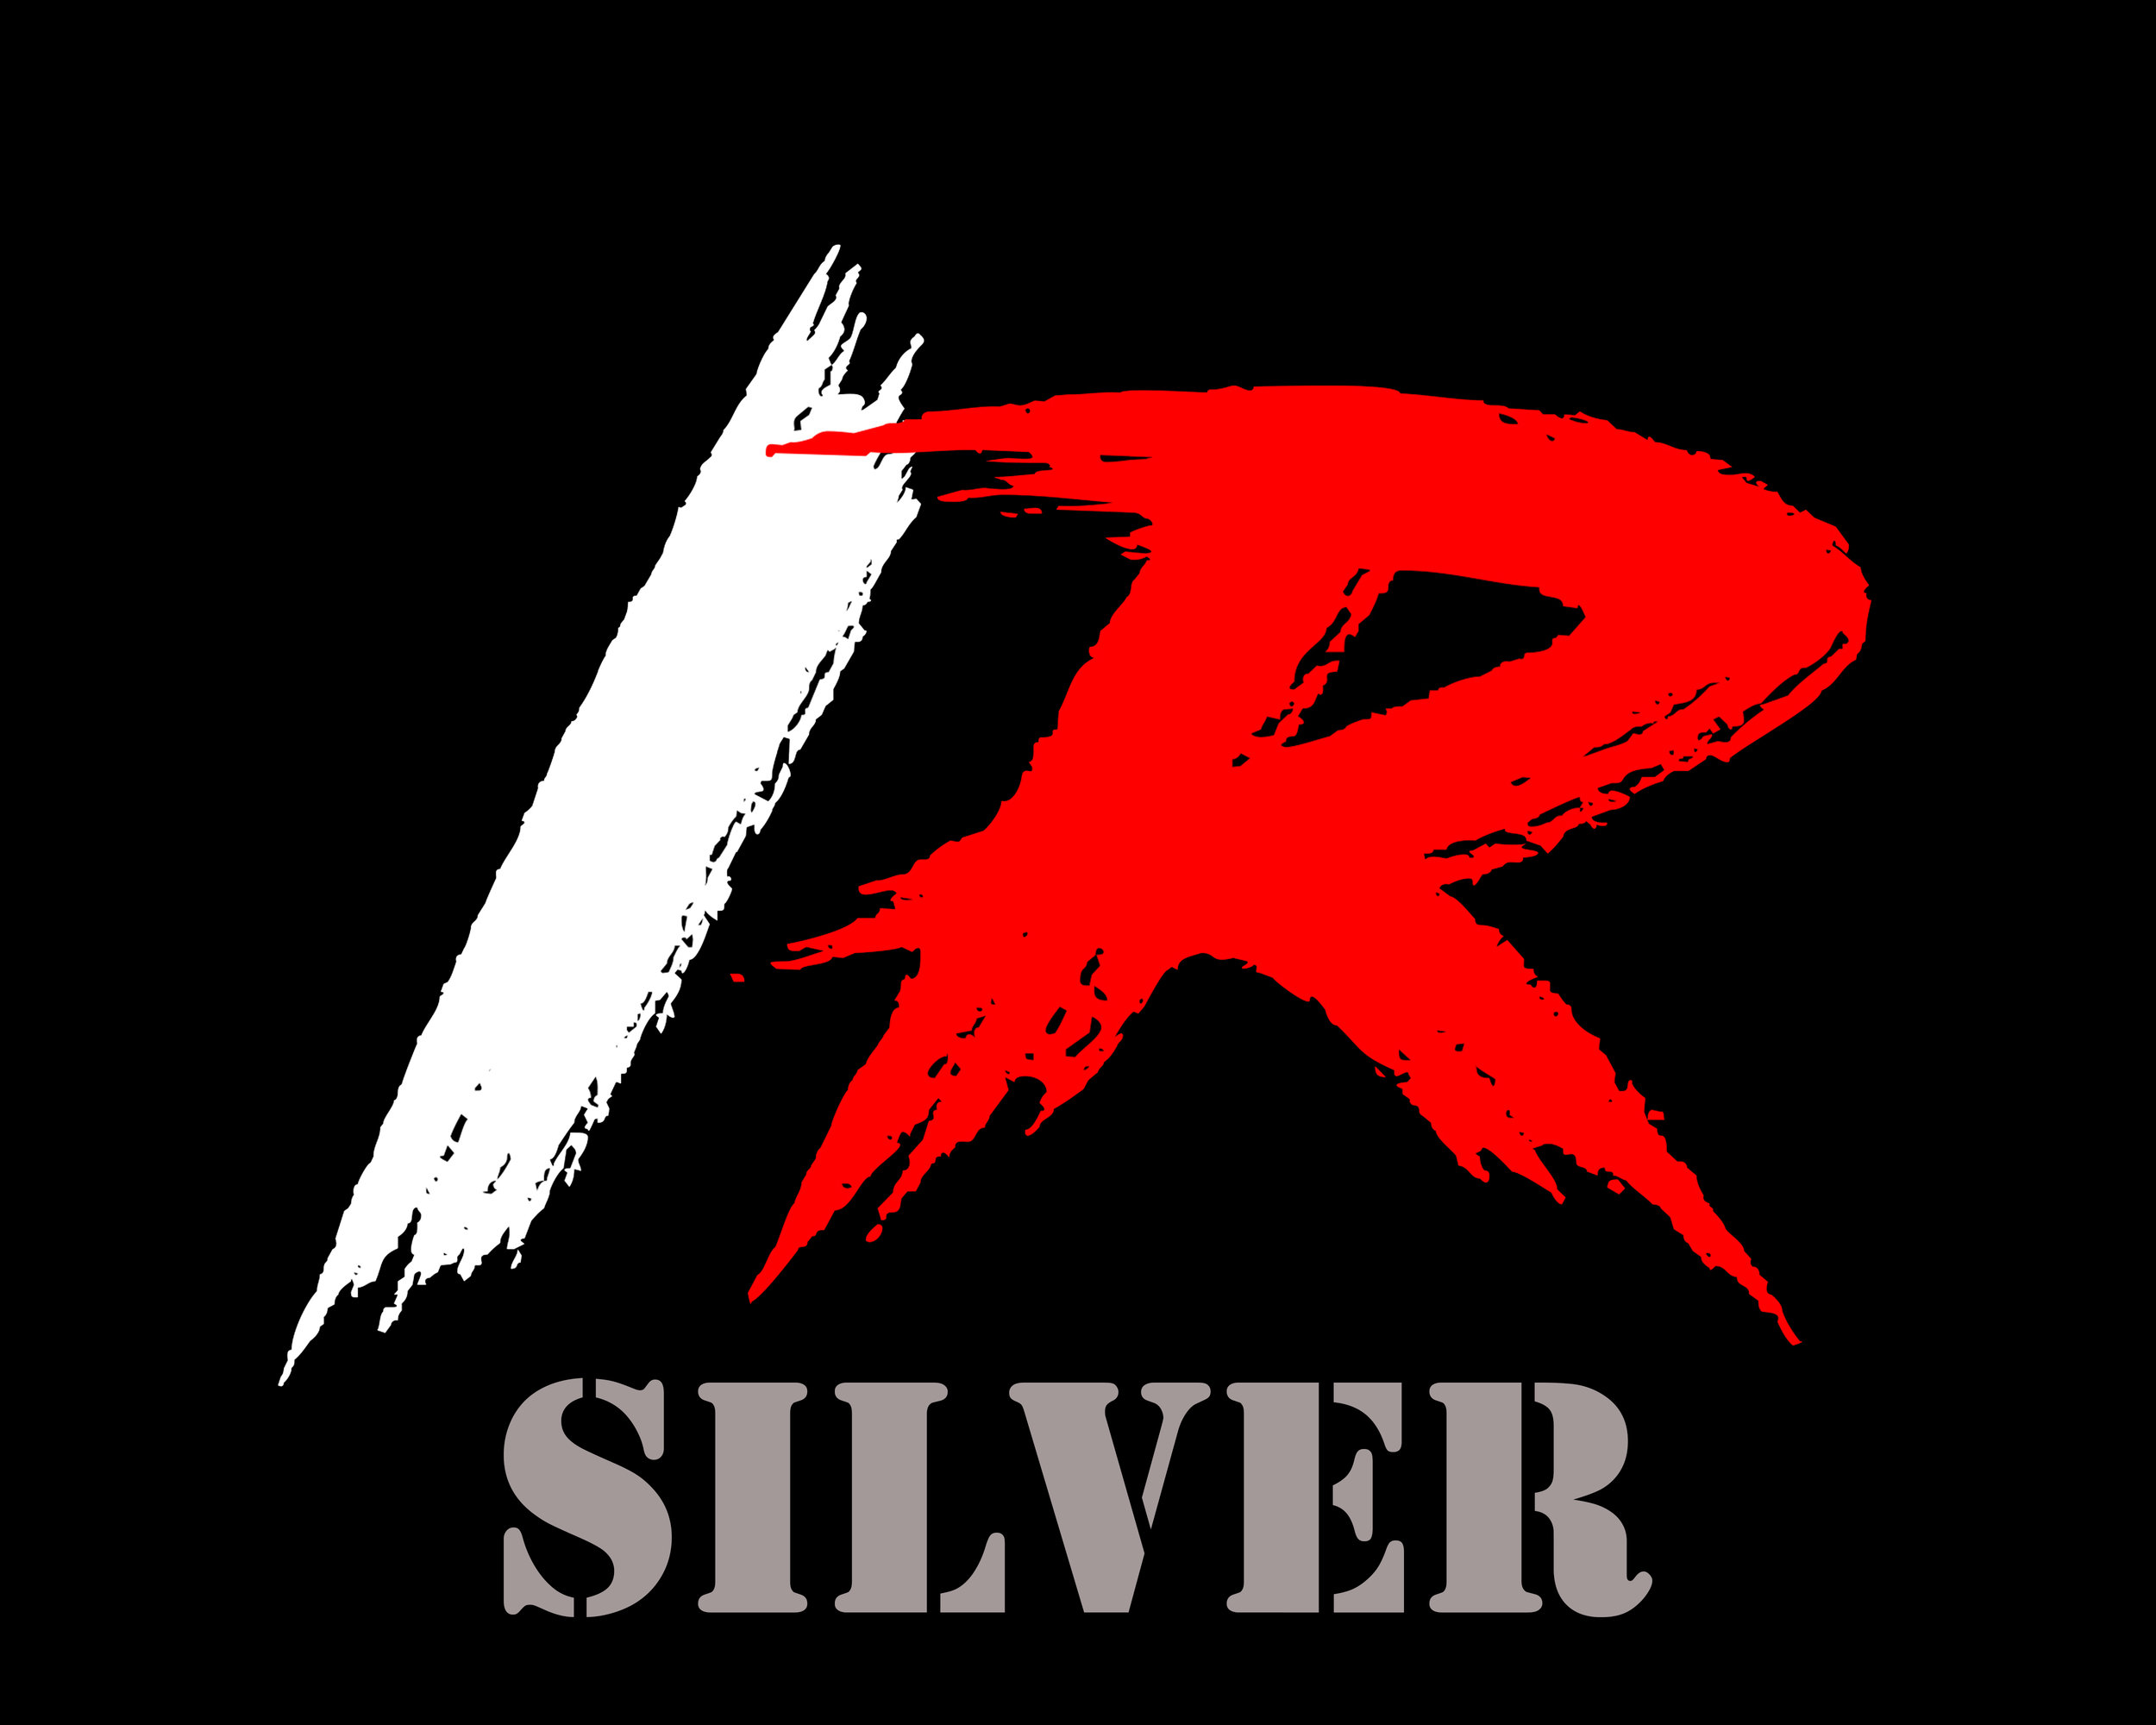 Supporter PackTier 2 (Silver) - $100.00